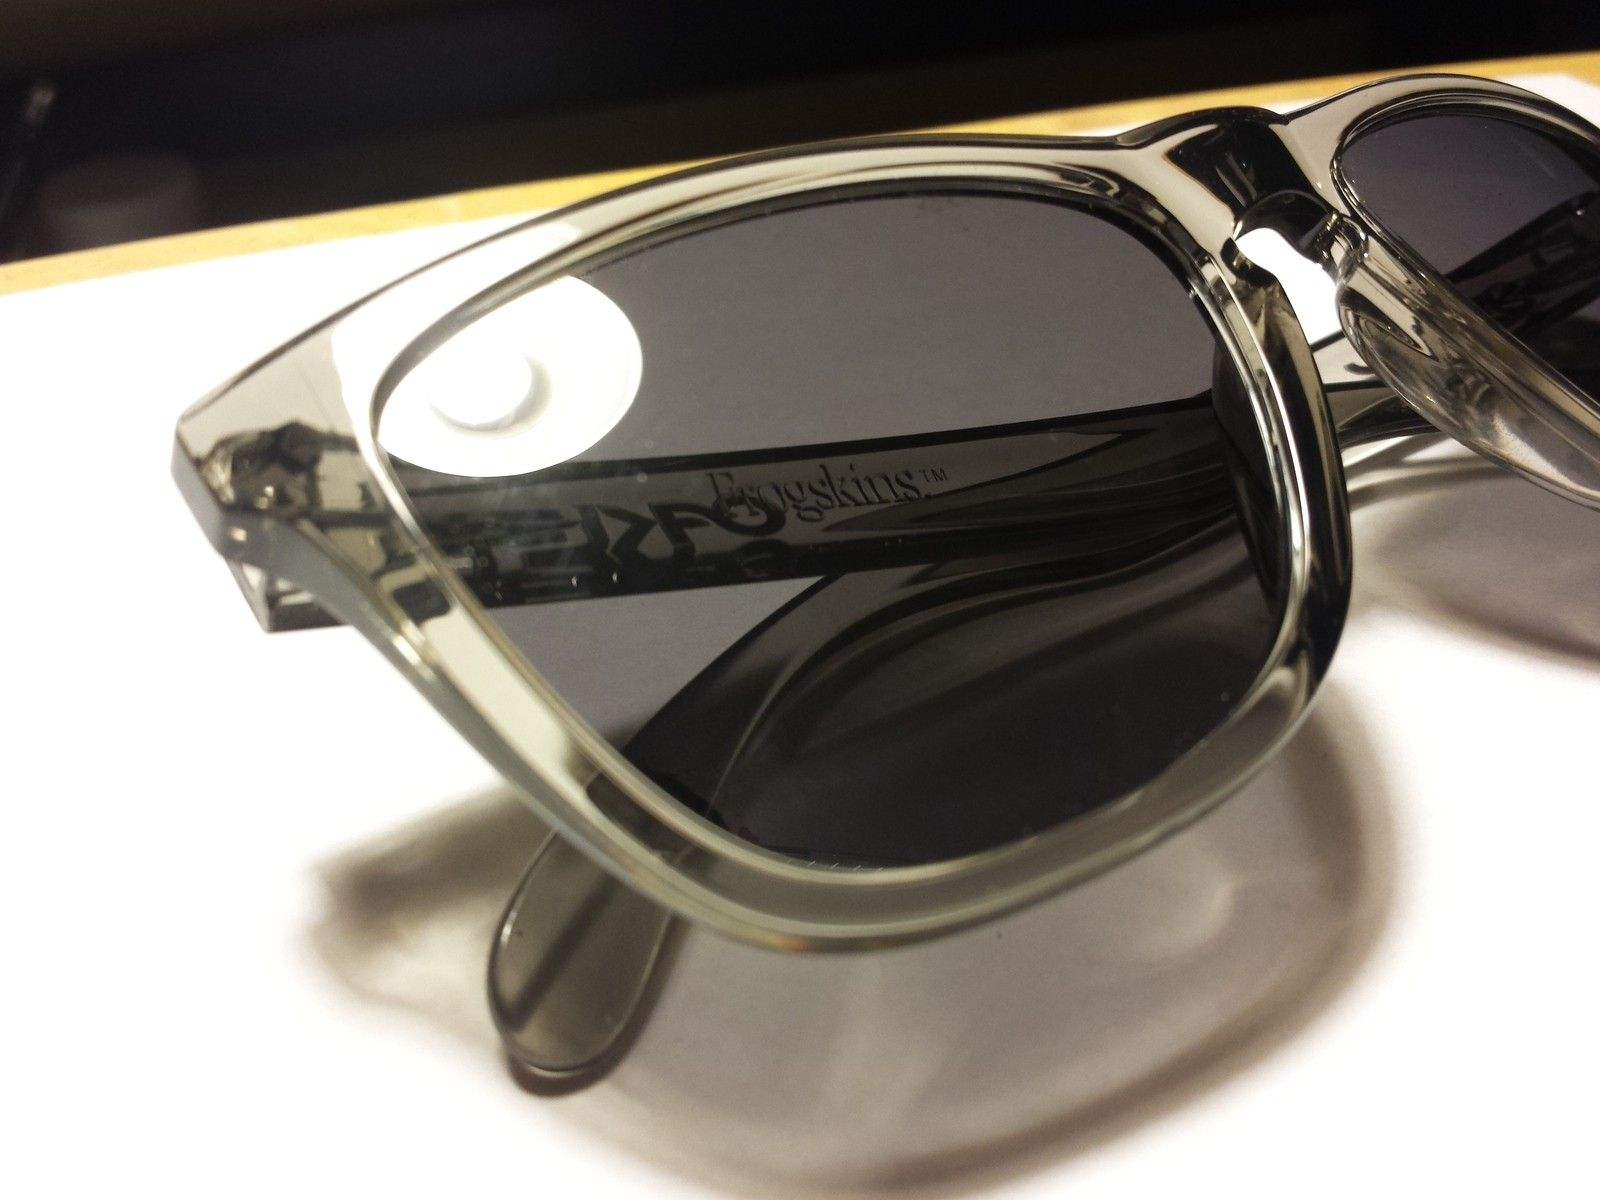 FSOT Ruby Frog Lenses - uploadfromtaptalk1435279549977.jpg